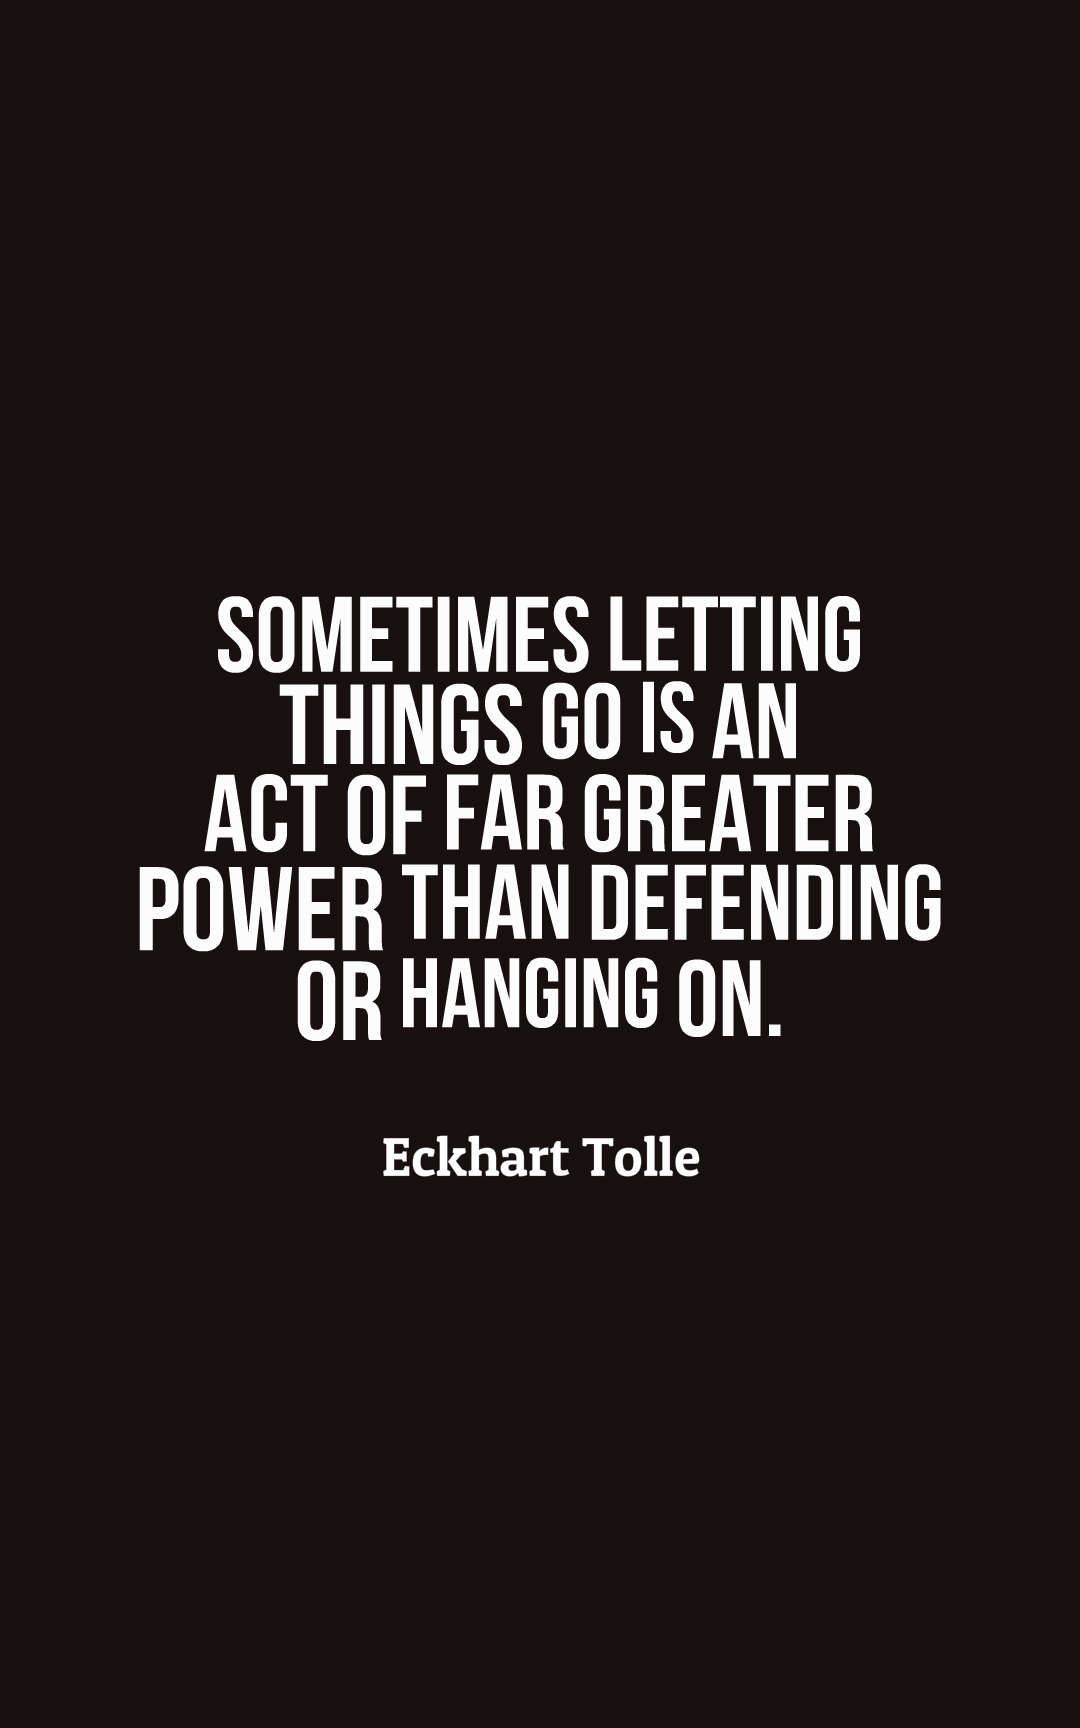 101 Inspiring Eckhart Tolle Quotes